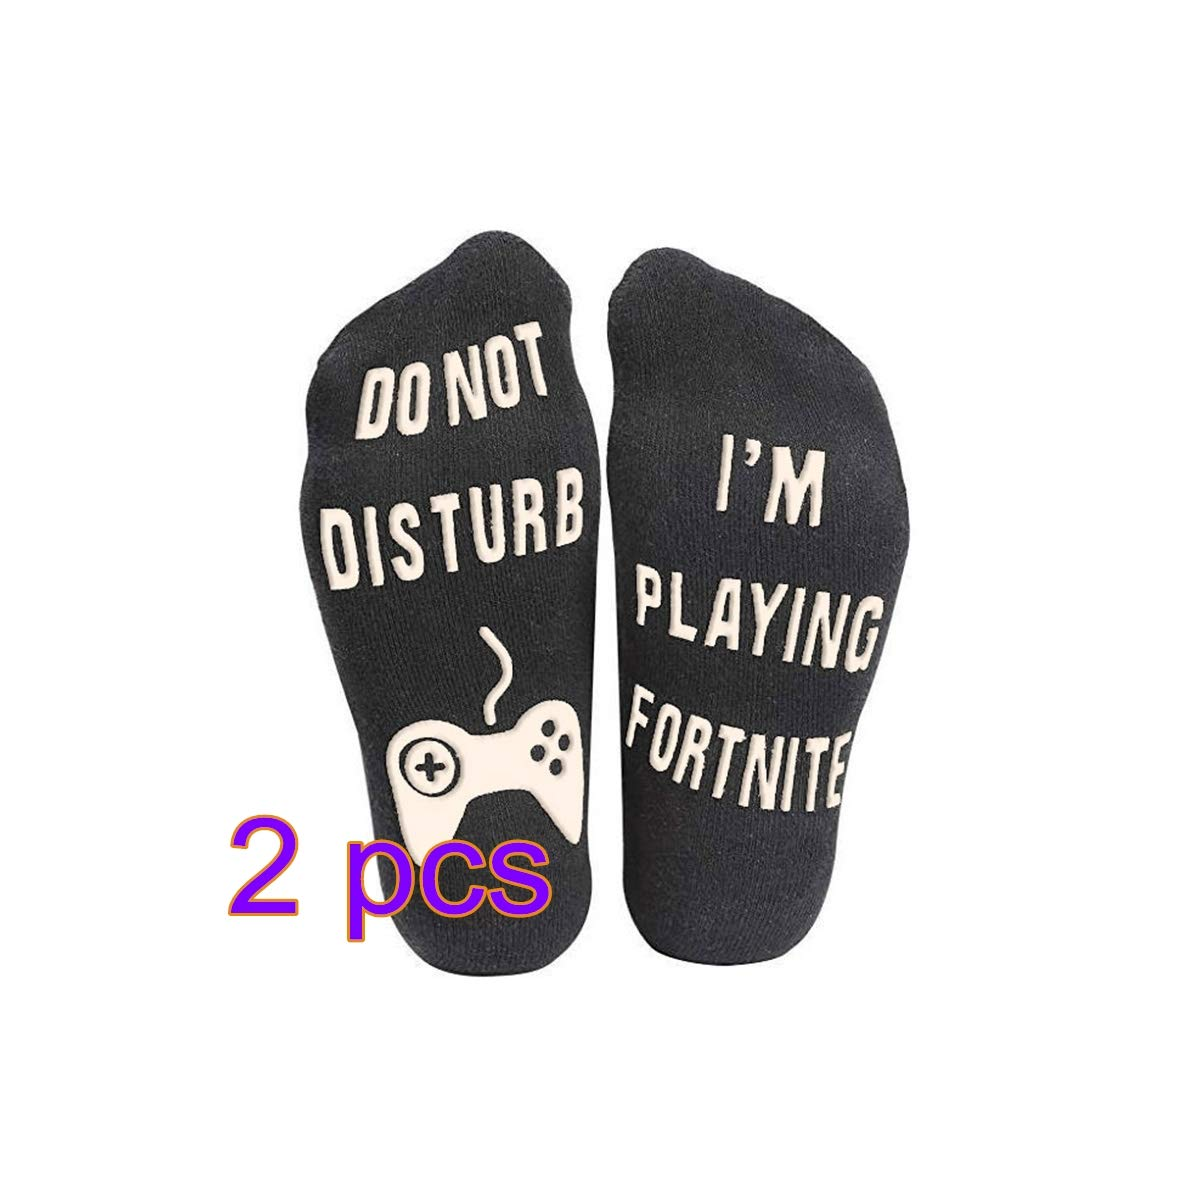 Do Not Disturb, I' m Playing 2 Pairs Ankle Sock Novelty Stocking for Men Kids Boys Great Gift for Game Lovers Keebgyy